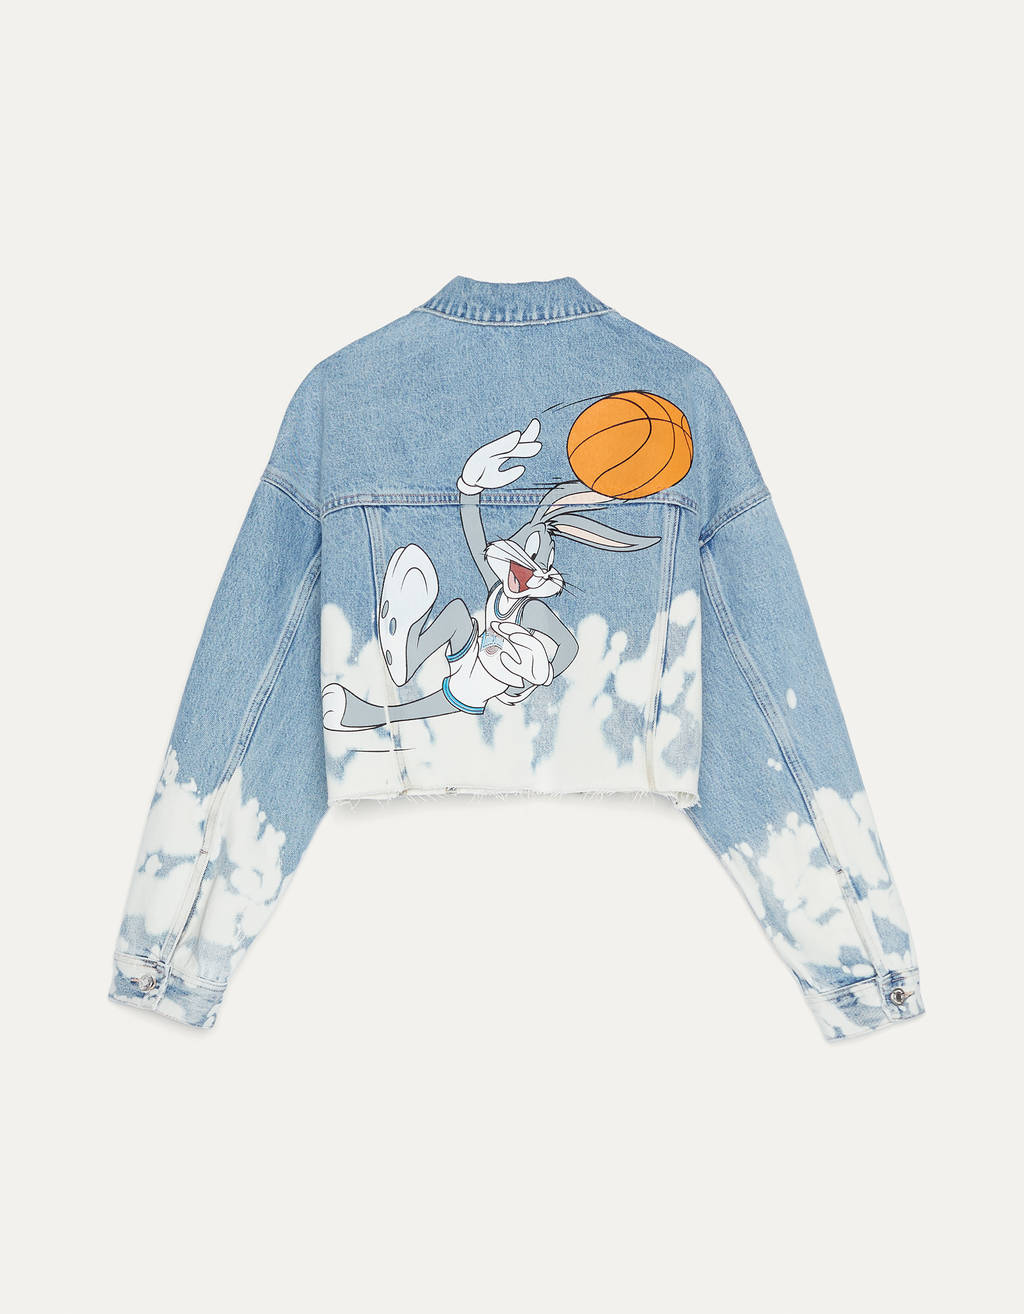 Cazadora denim Space Jam x Bershka.